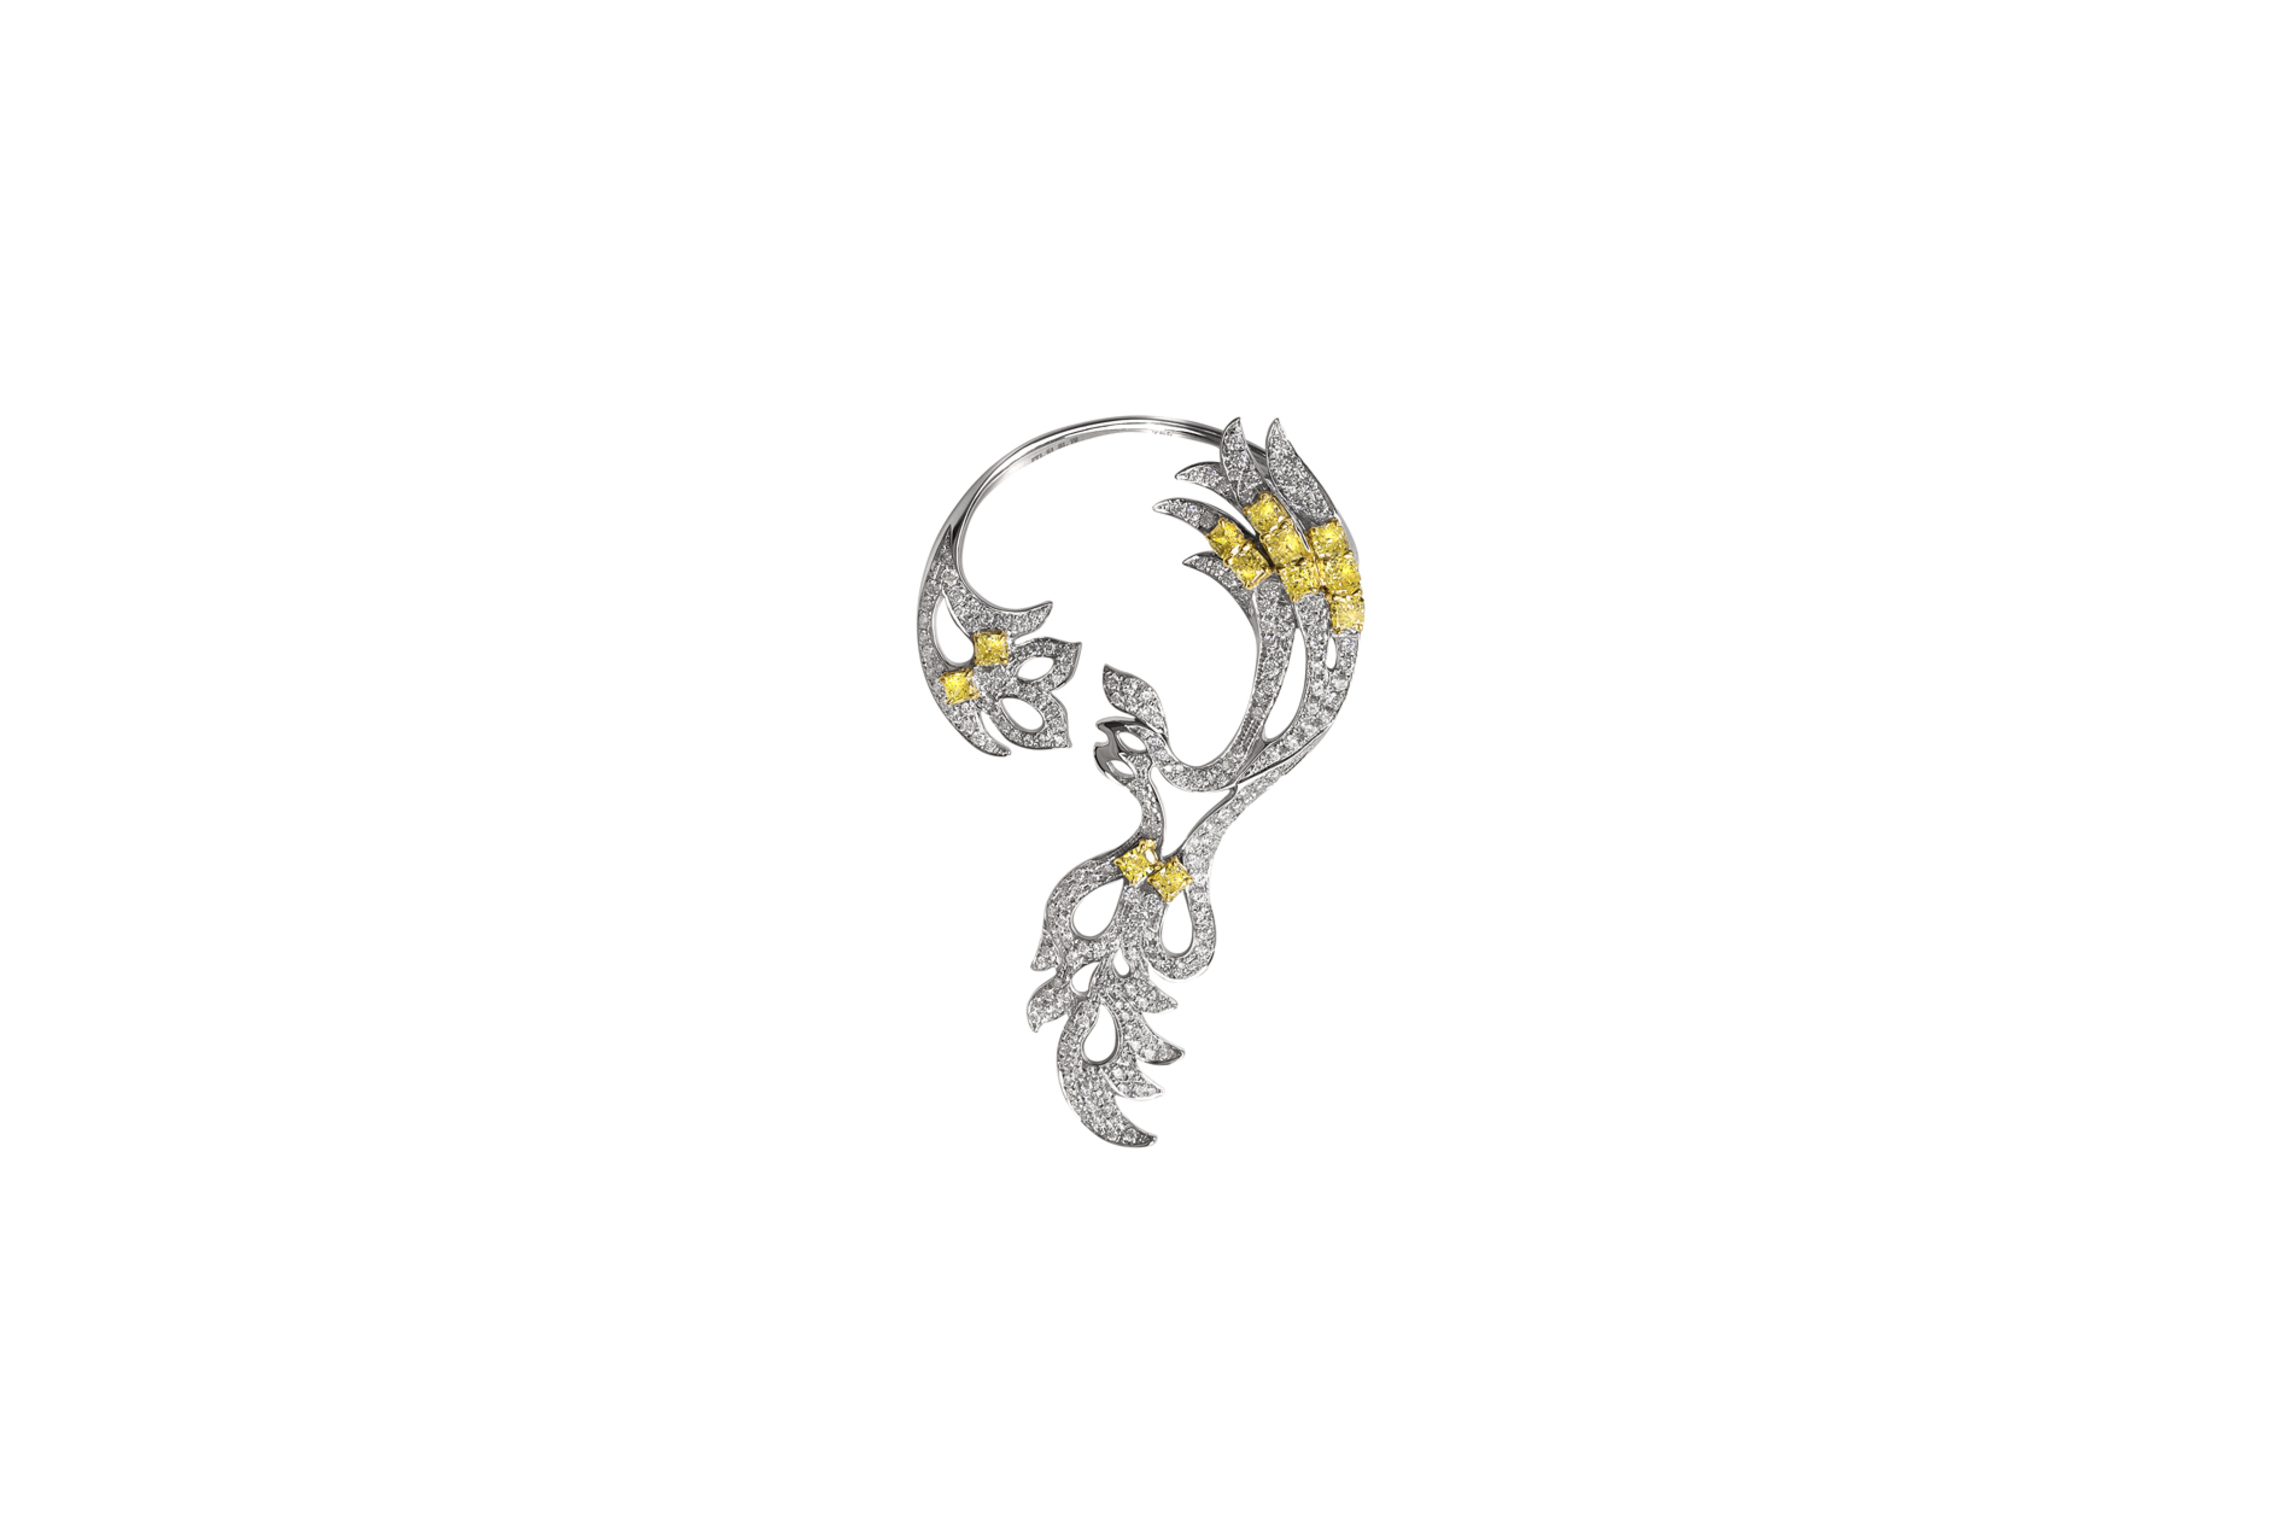 EAR CUFF, designer Marielle Byworth